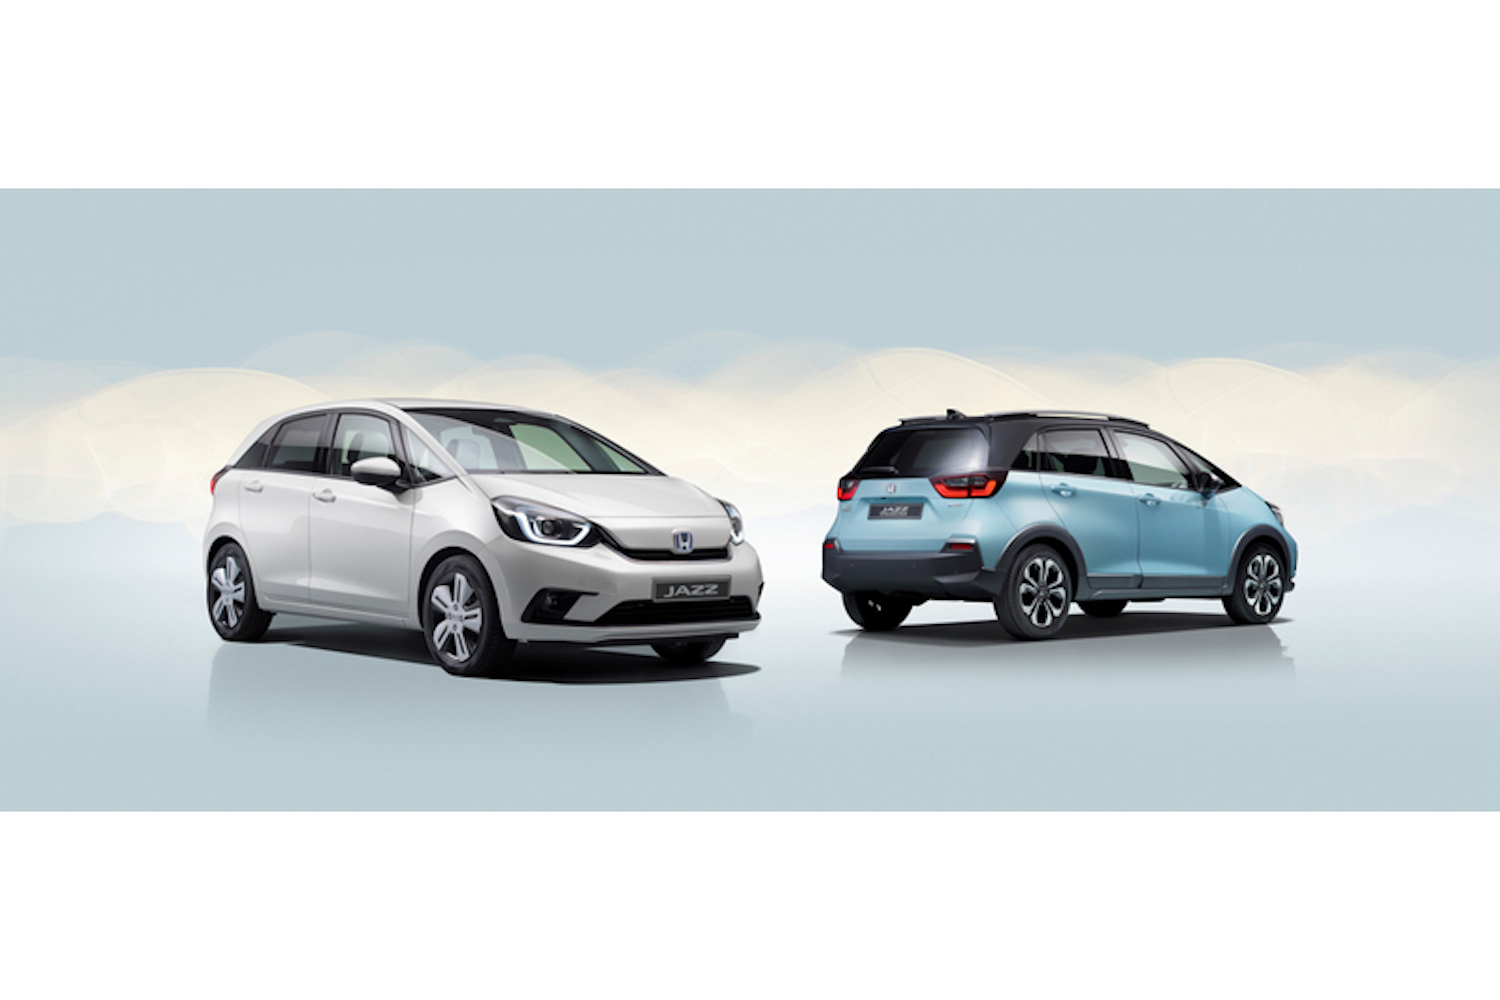 Car News | Crossover model added to Honda Jazz family | CompleteCar.ie